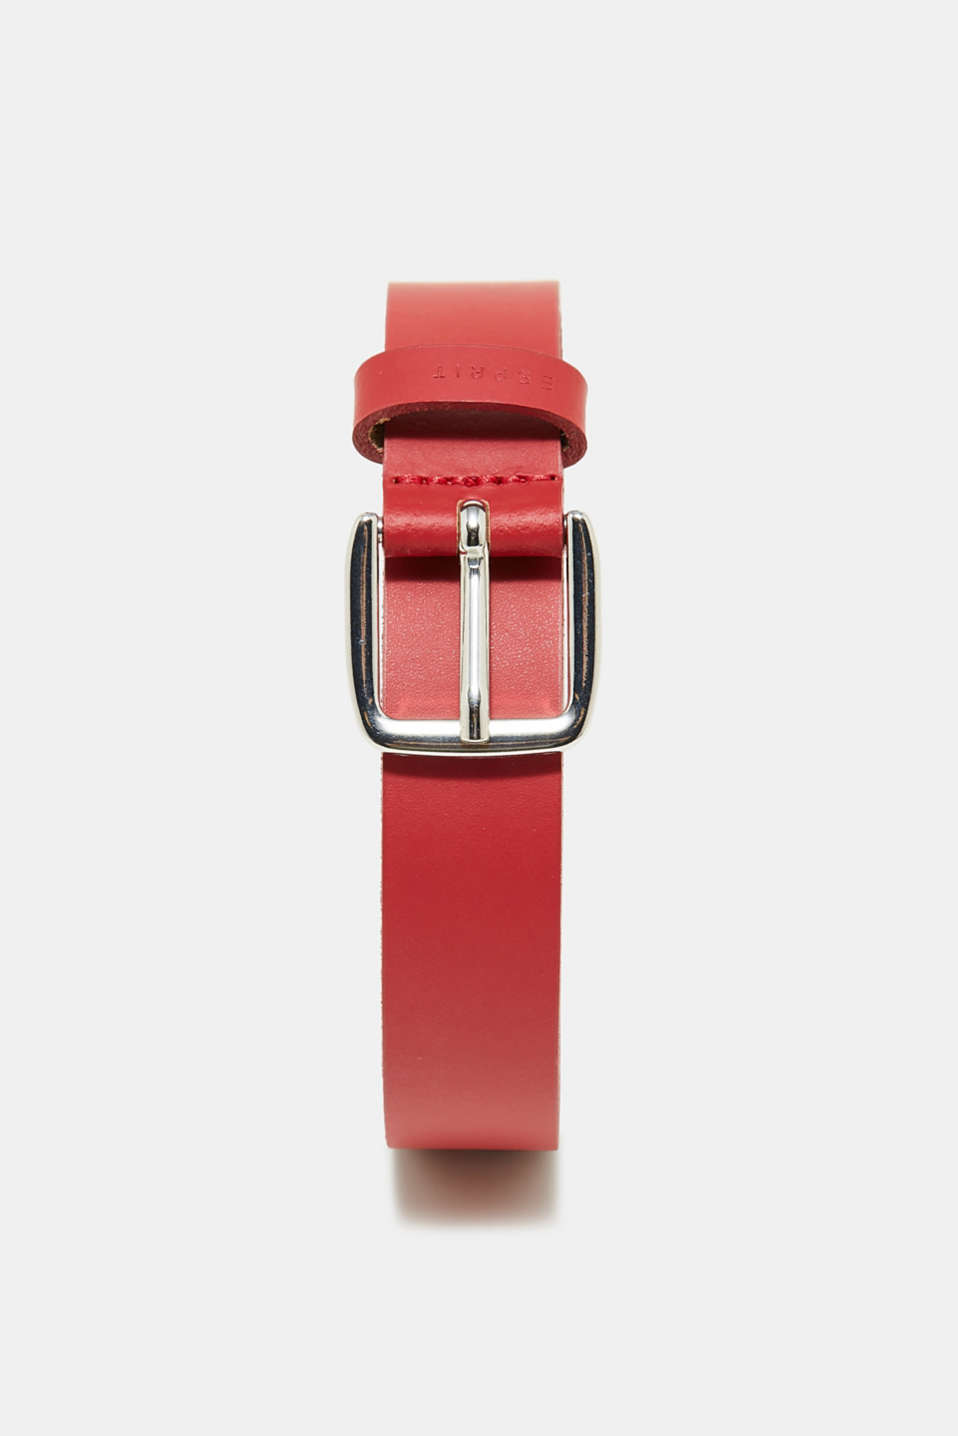 Esprit - Belt in trend colours, in leather